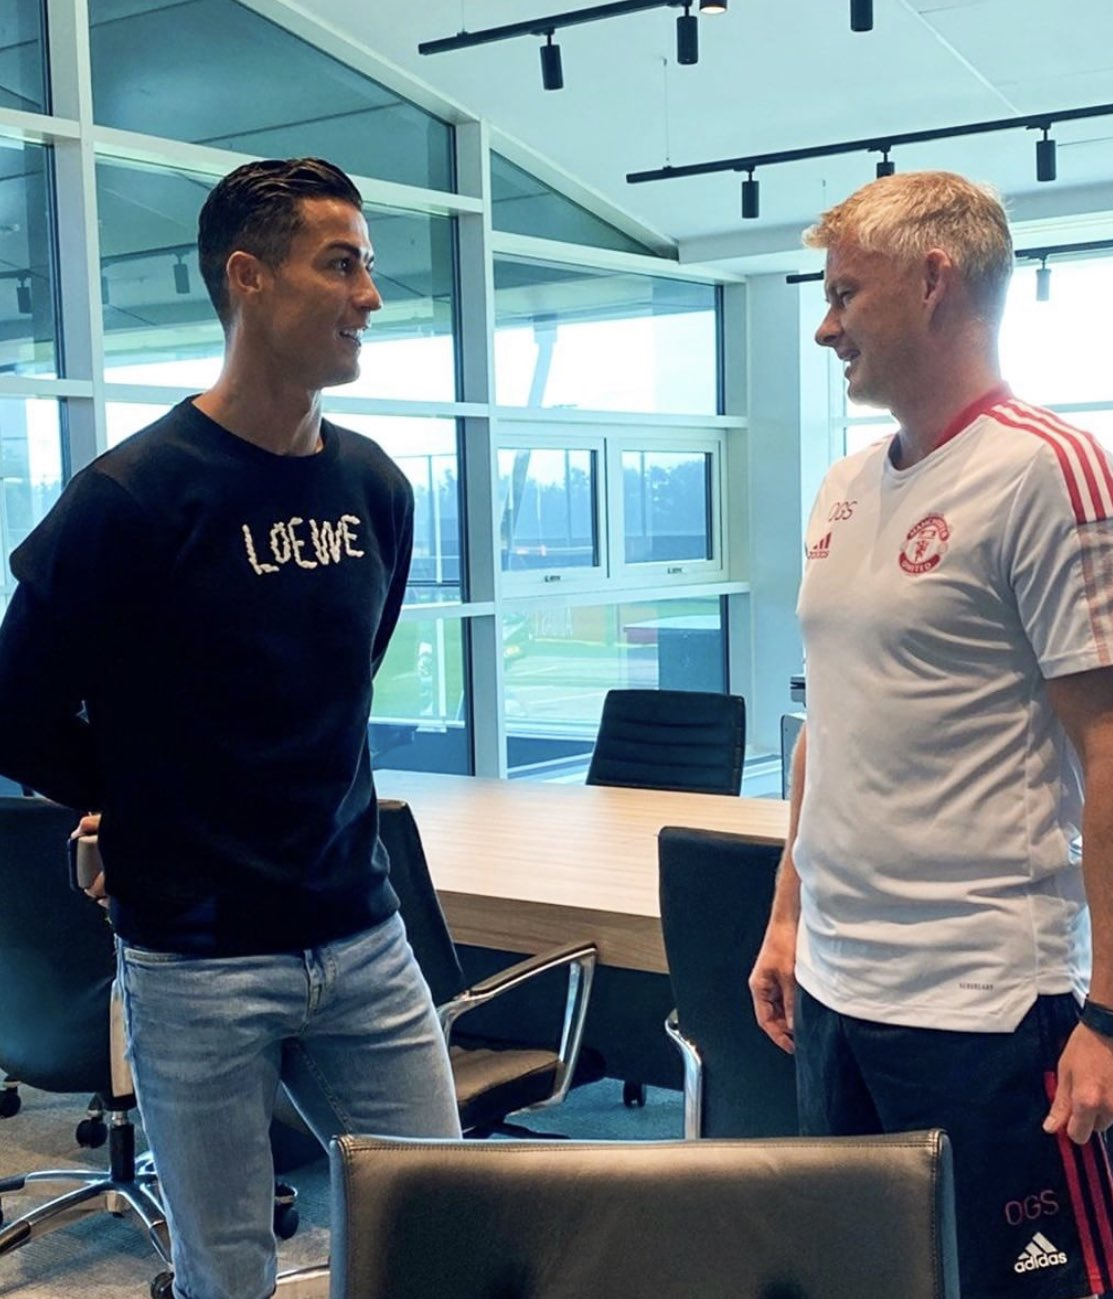 Premier League: Cristiano Ronaldo trains with Manchester United at Carrington, final fees revealed between Juventus and Man United